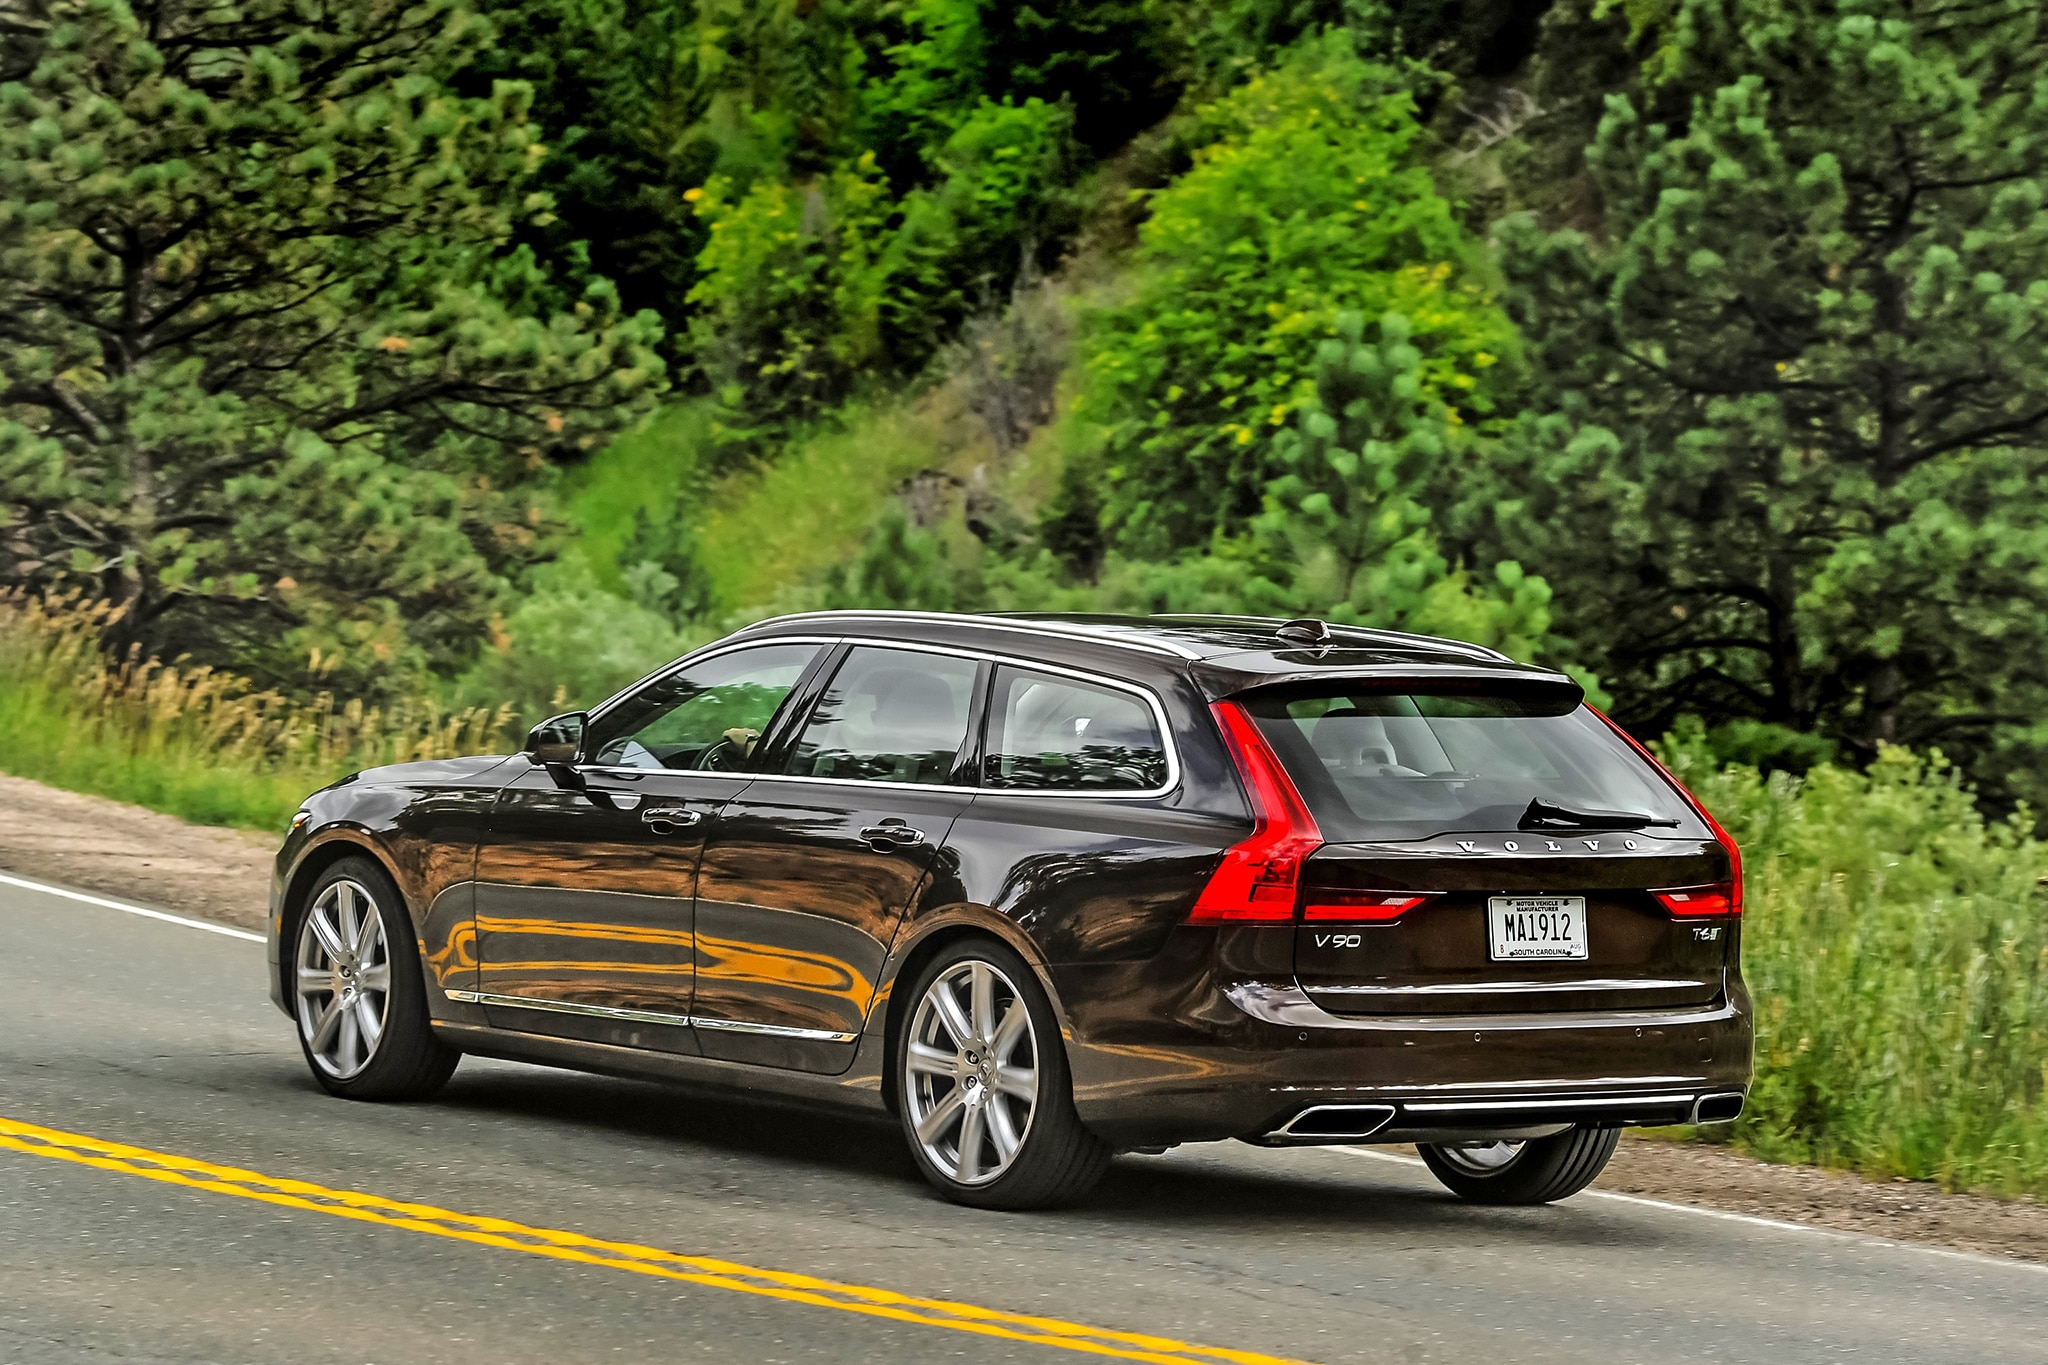 2018 volvo v90. wonderful 2018 show more on 2018 volvo v90